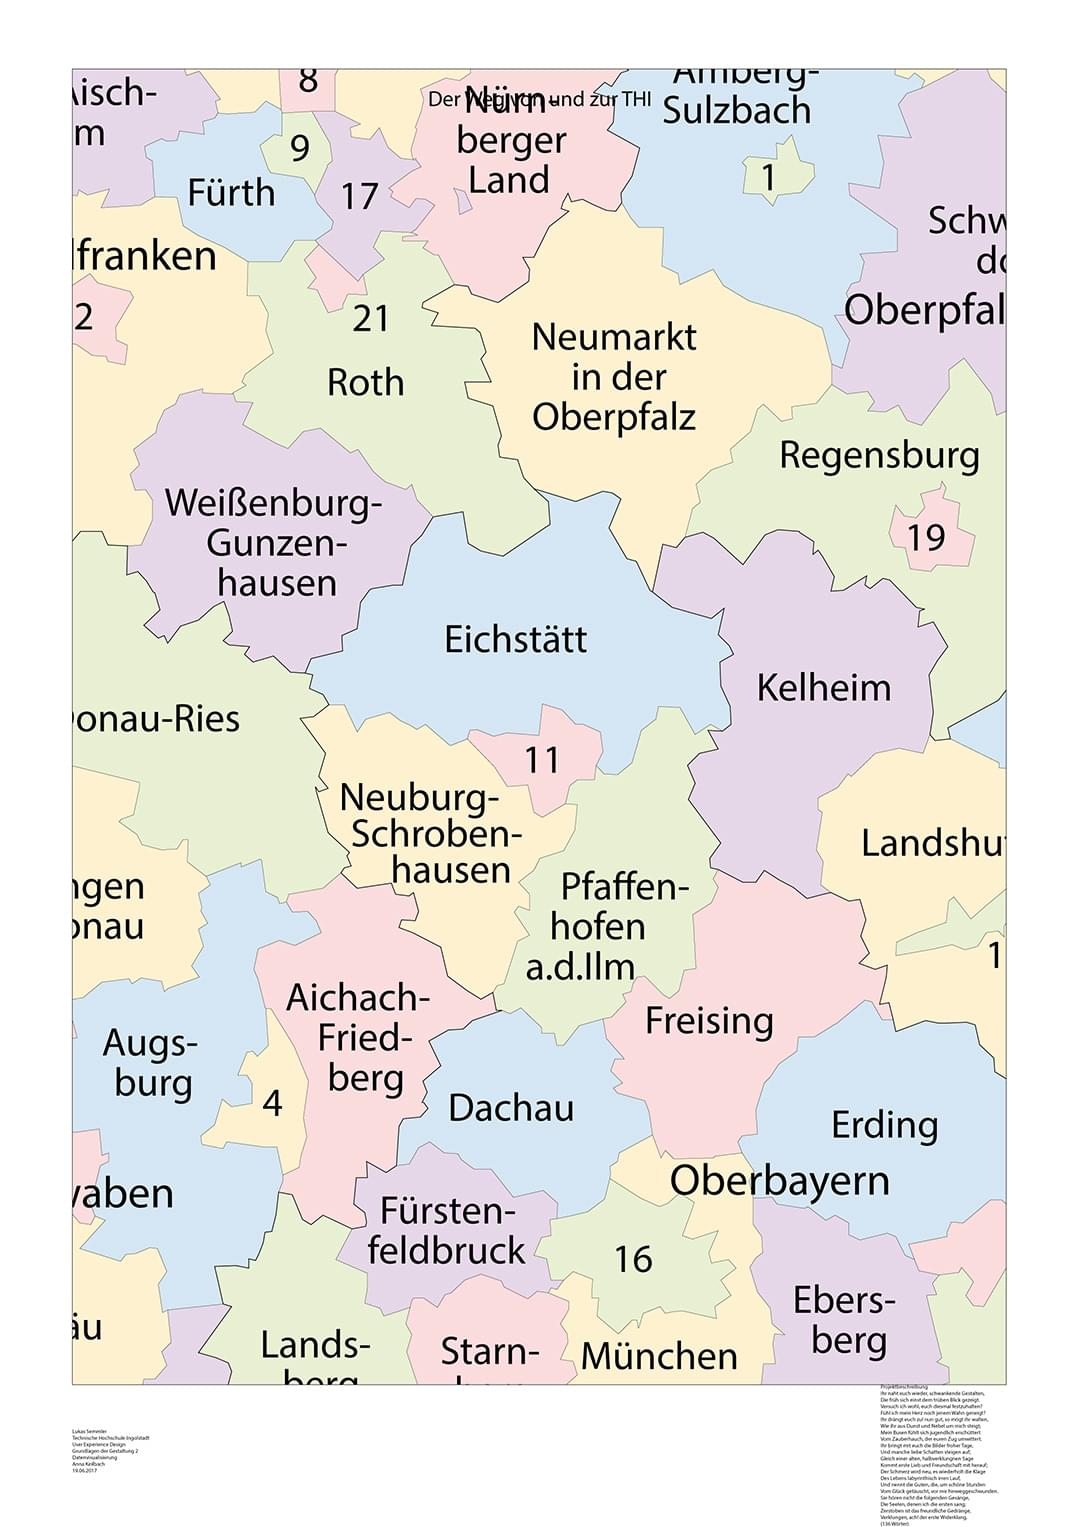 Step 1: The page format of DIN A1 has been chosen. Also a map of the Bavarian counties is included as starting point.